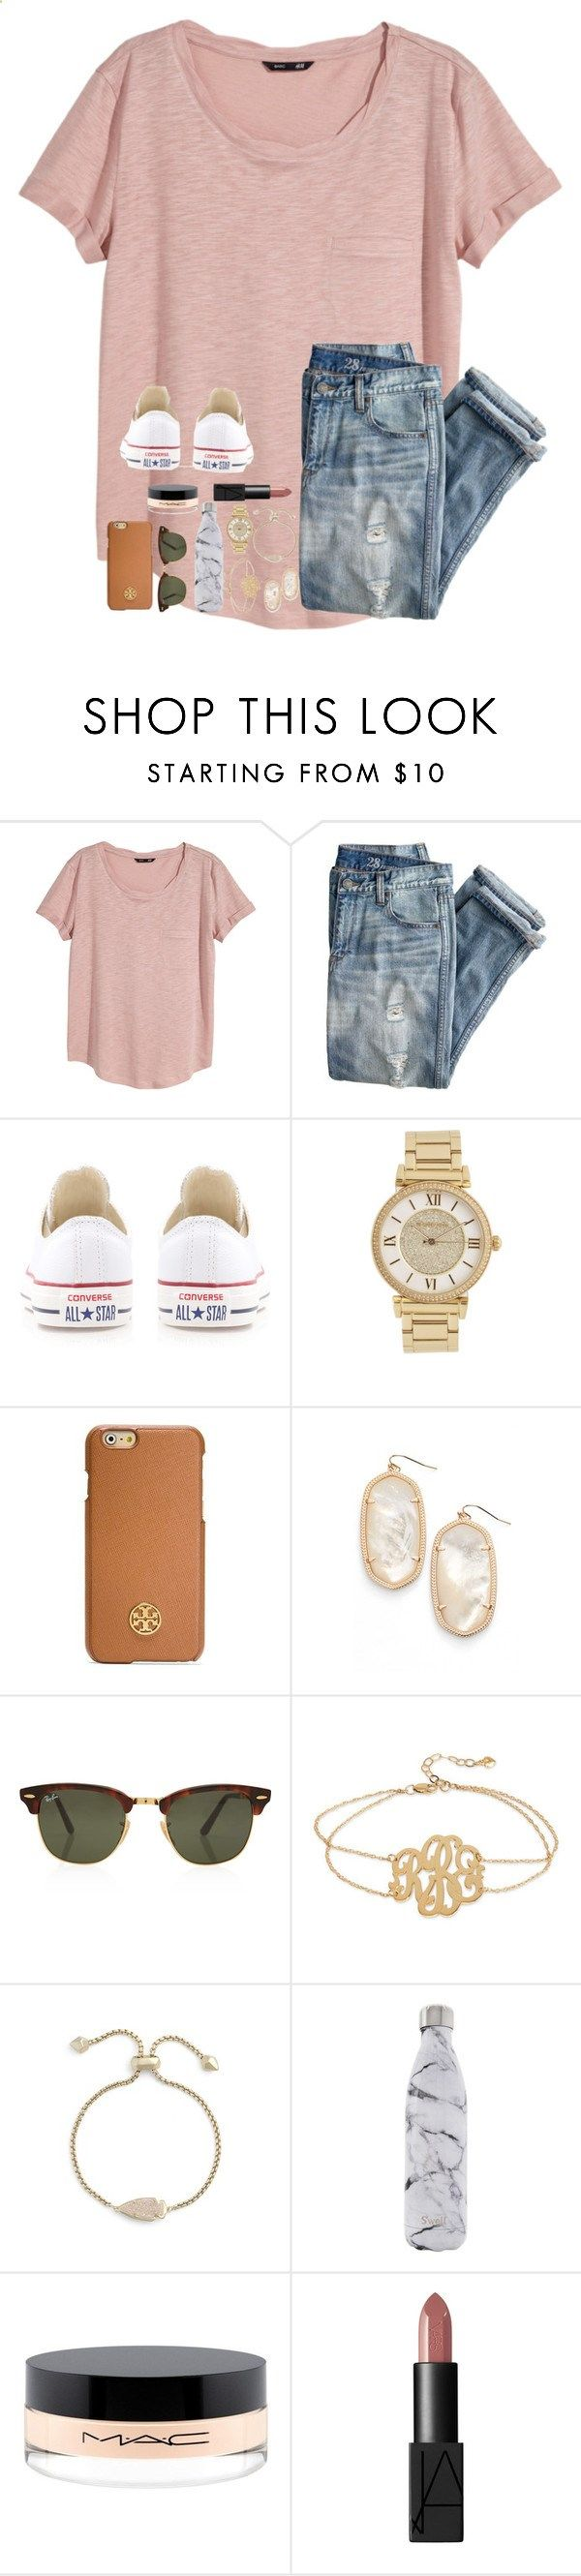 Untitled #104 by tortor7 ❤ liked on Polyvore featuring H&M, J.Crew, Converse, Michael Kors, Tory Burch, Kendra Scott, Rayban, Kate Spade, S'well and MAC Cosmetics